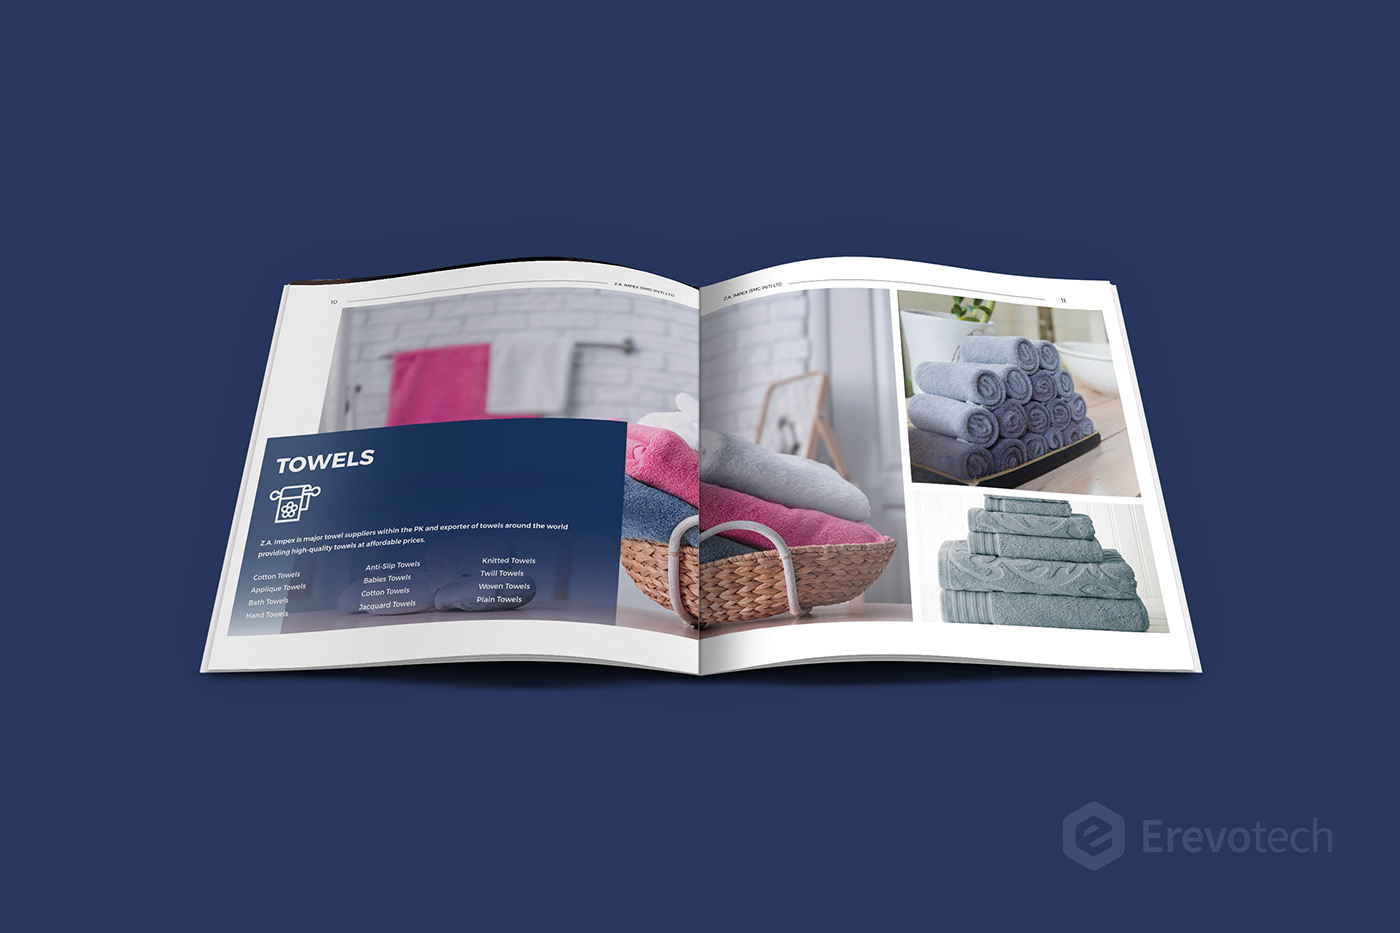 towel products catalogue design